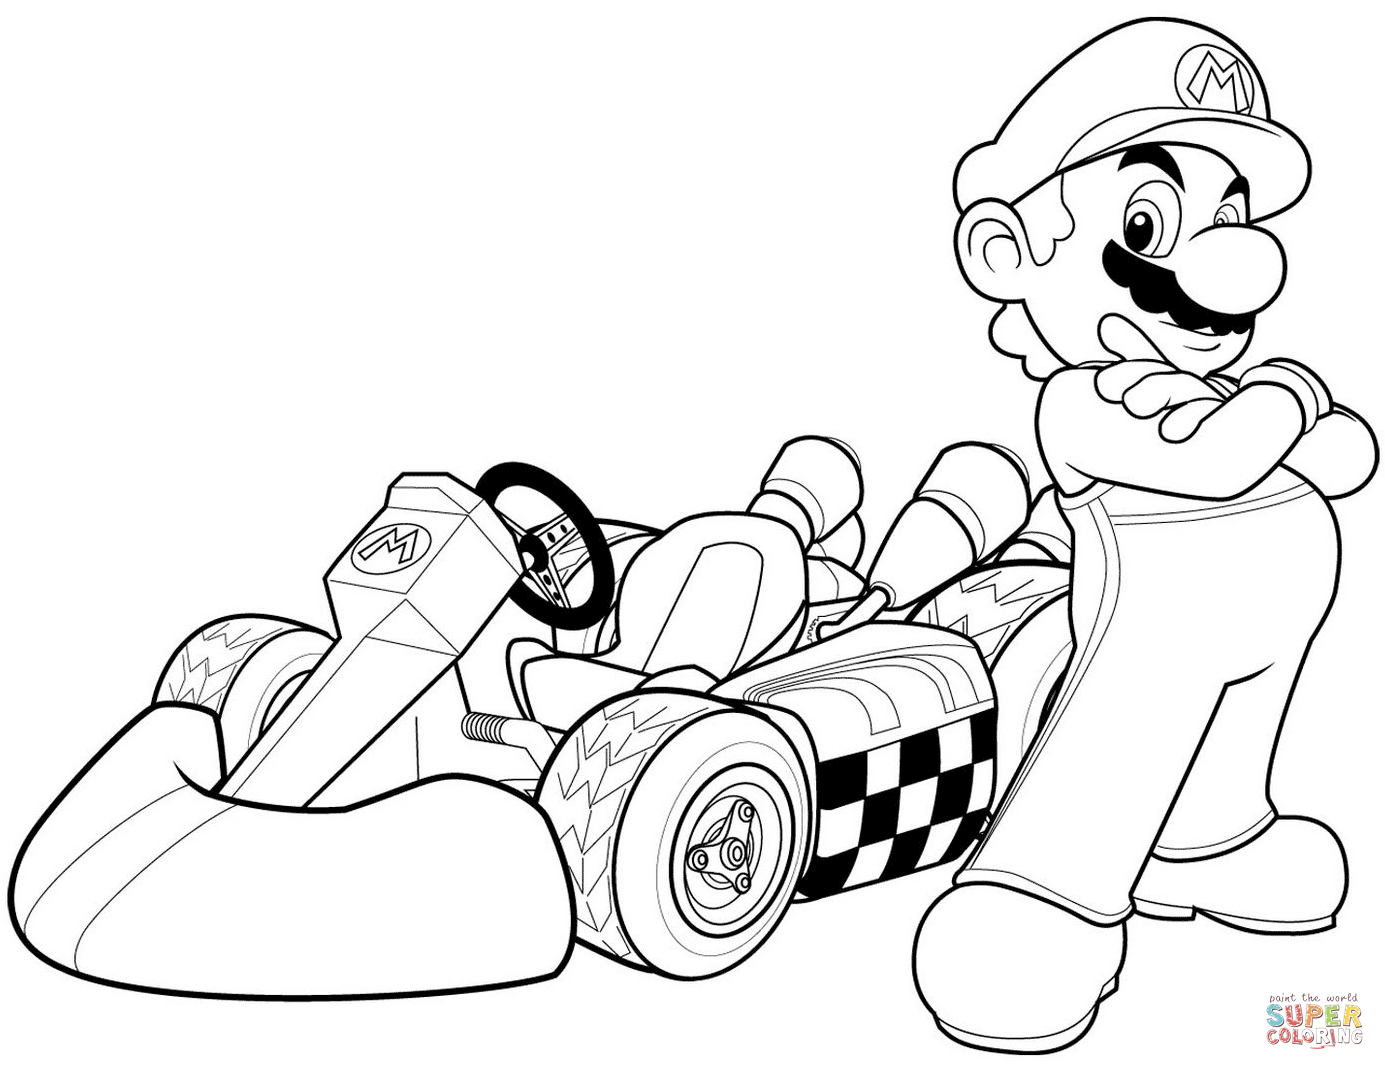 Mario In Mario Kart Wii Super Coloring Super Mario Coloring Pages Mario Coloring Pages Coloring Pages